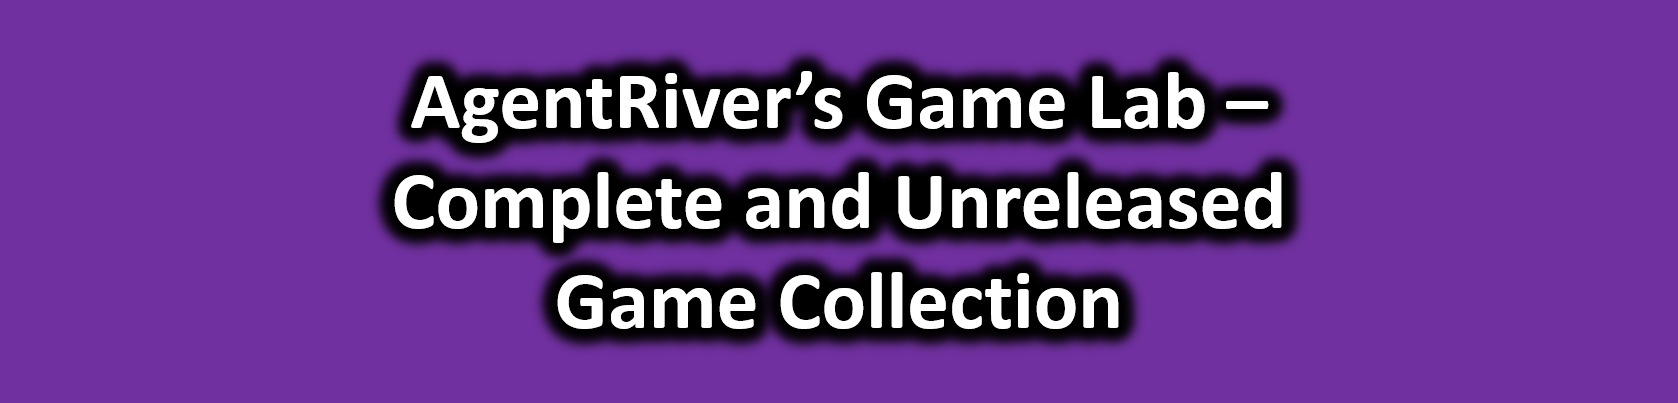 AgentRiver's Game Lab - Complete and Unreleased Game Collection